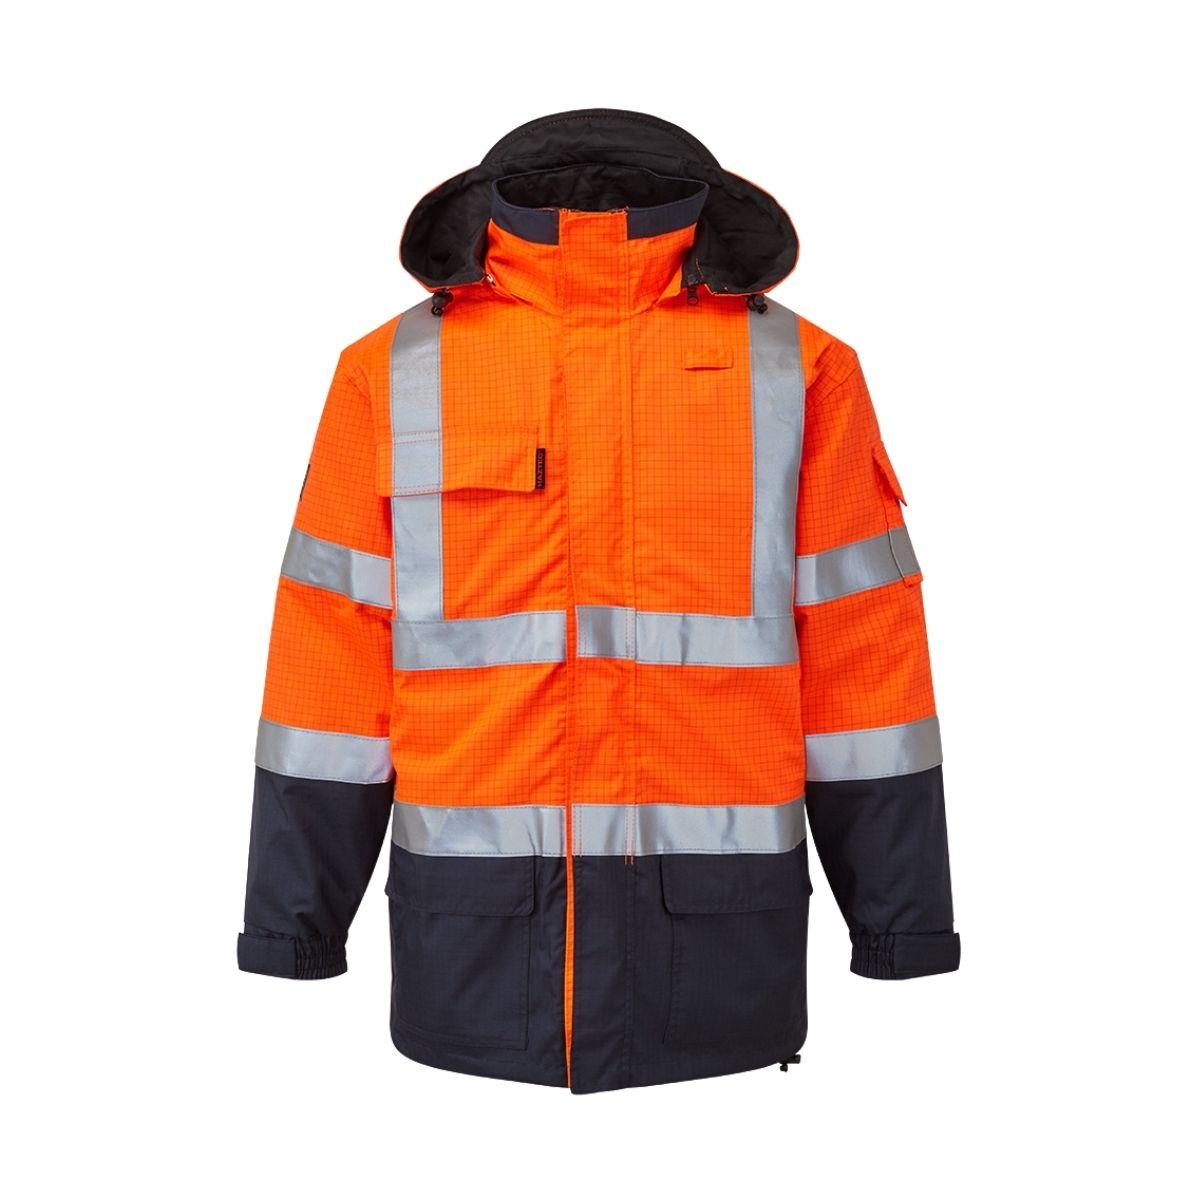 AS9464 HAZTEC® Boulton FR AS Hi-Visibility Waterproof Traffic Jacket - Orange_Navy Front